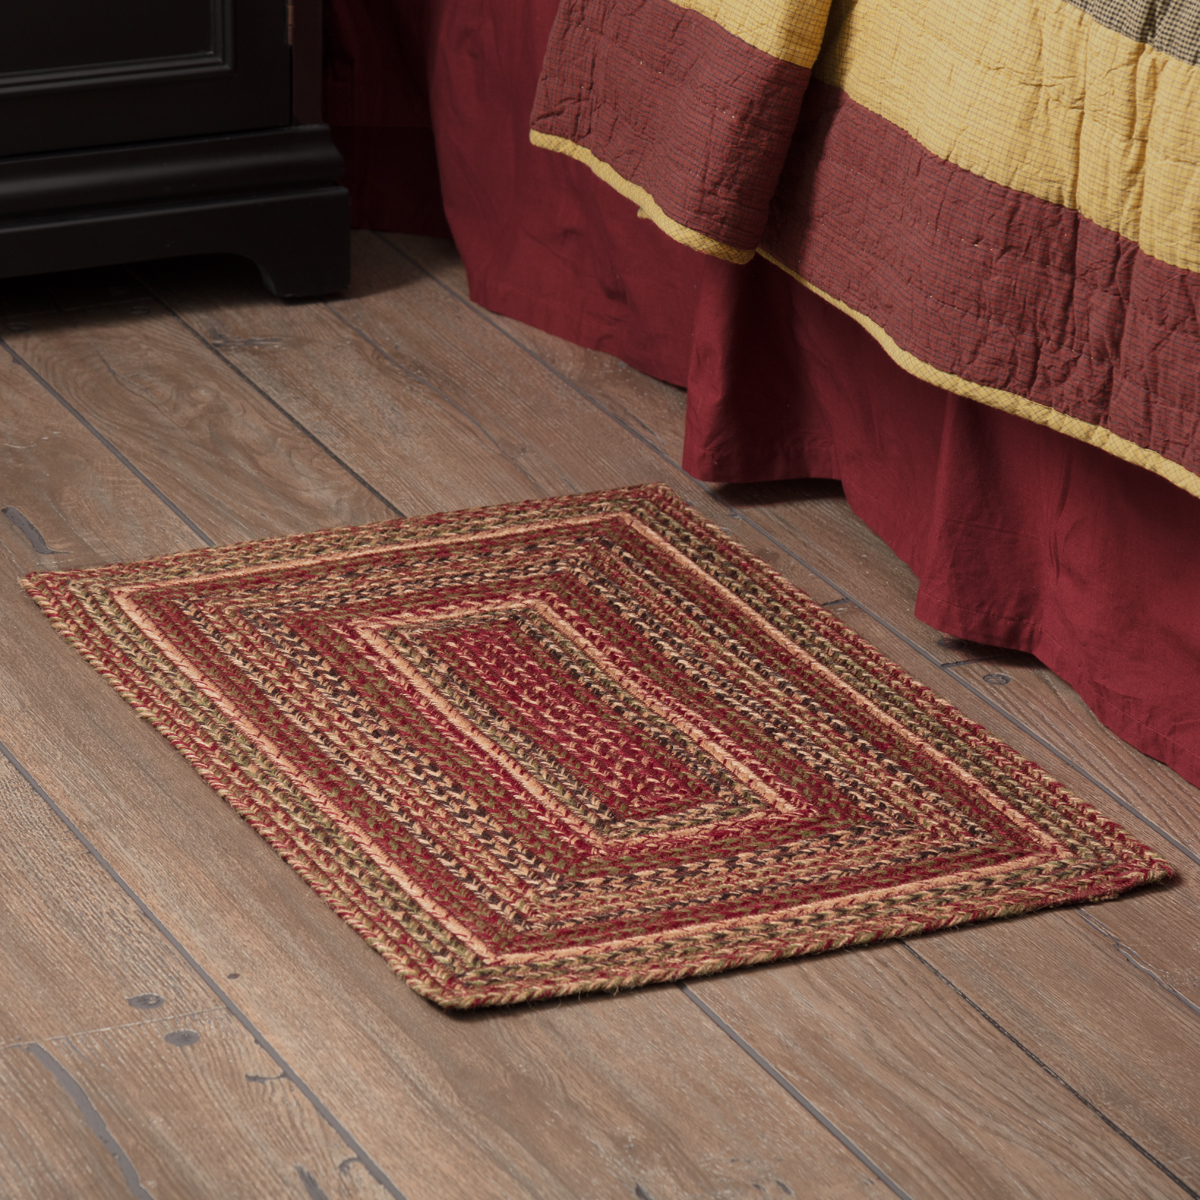 Cider Mill Jute Rug Rect 20x30